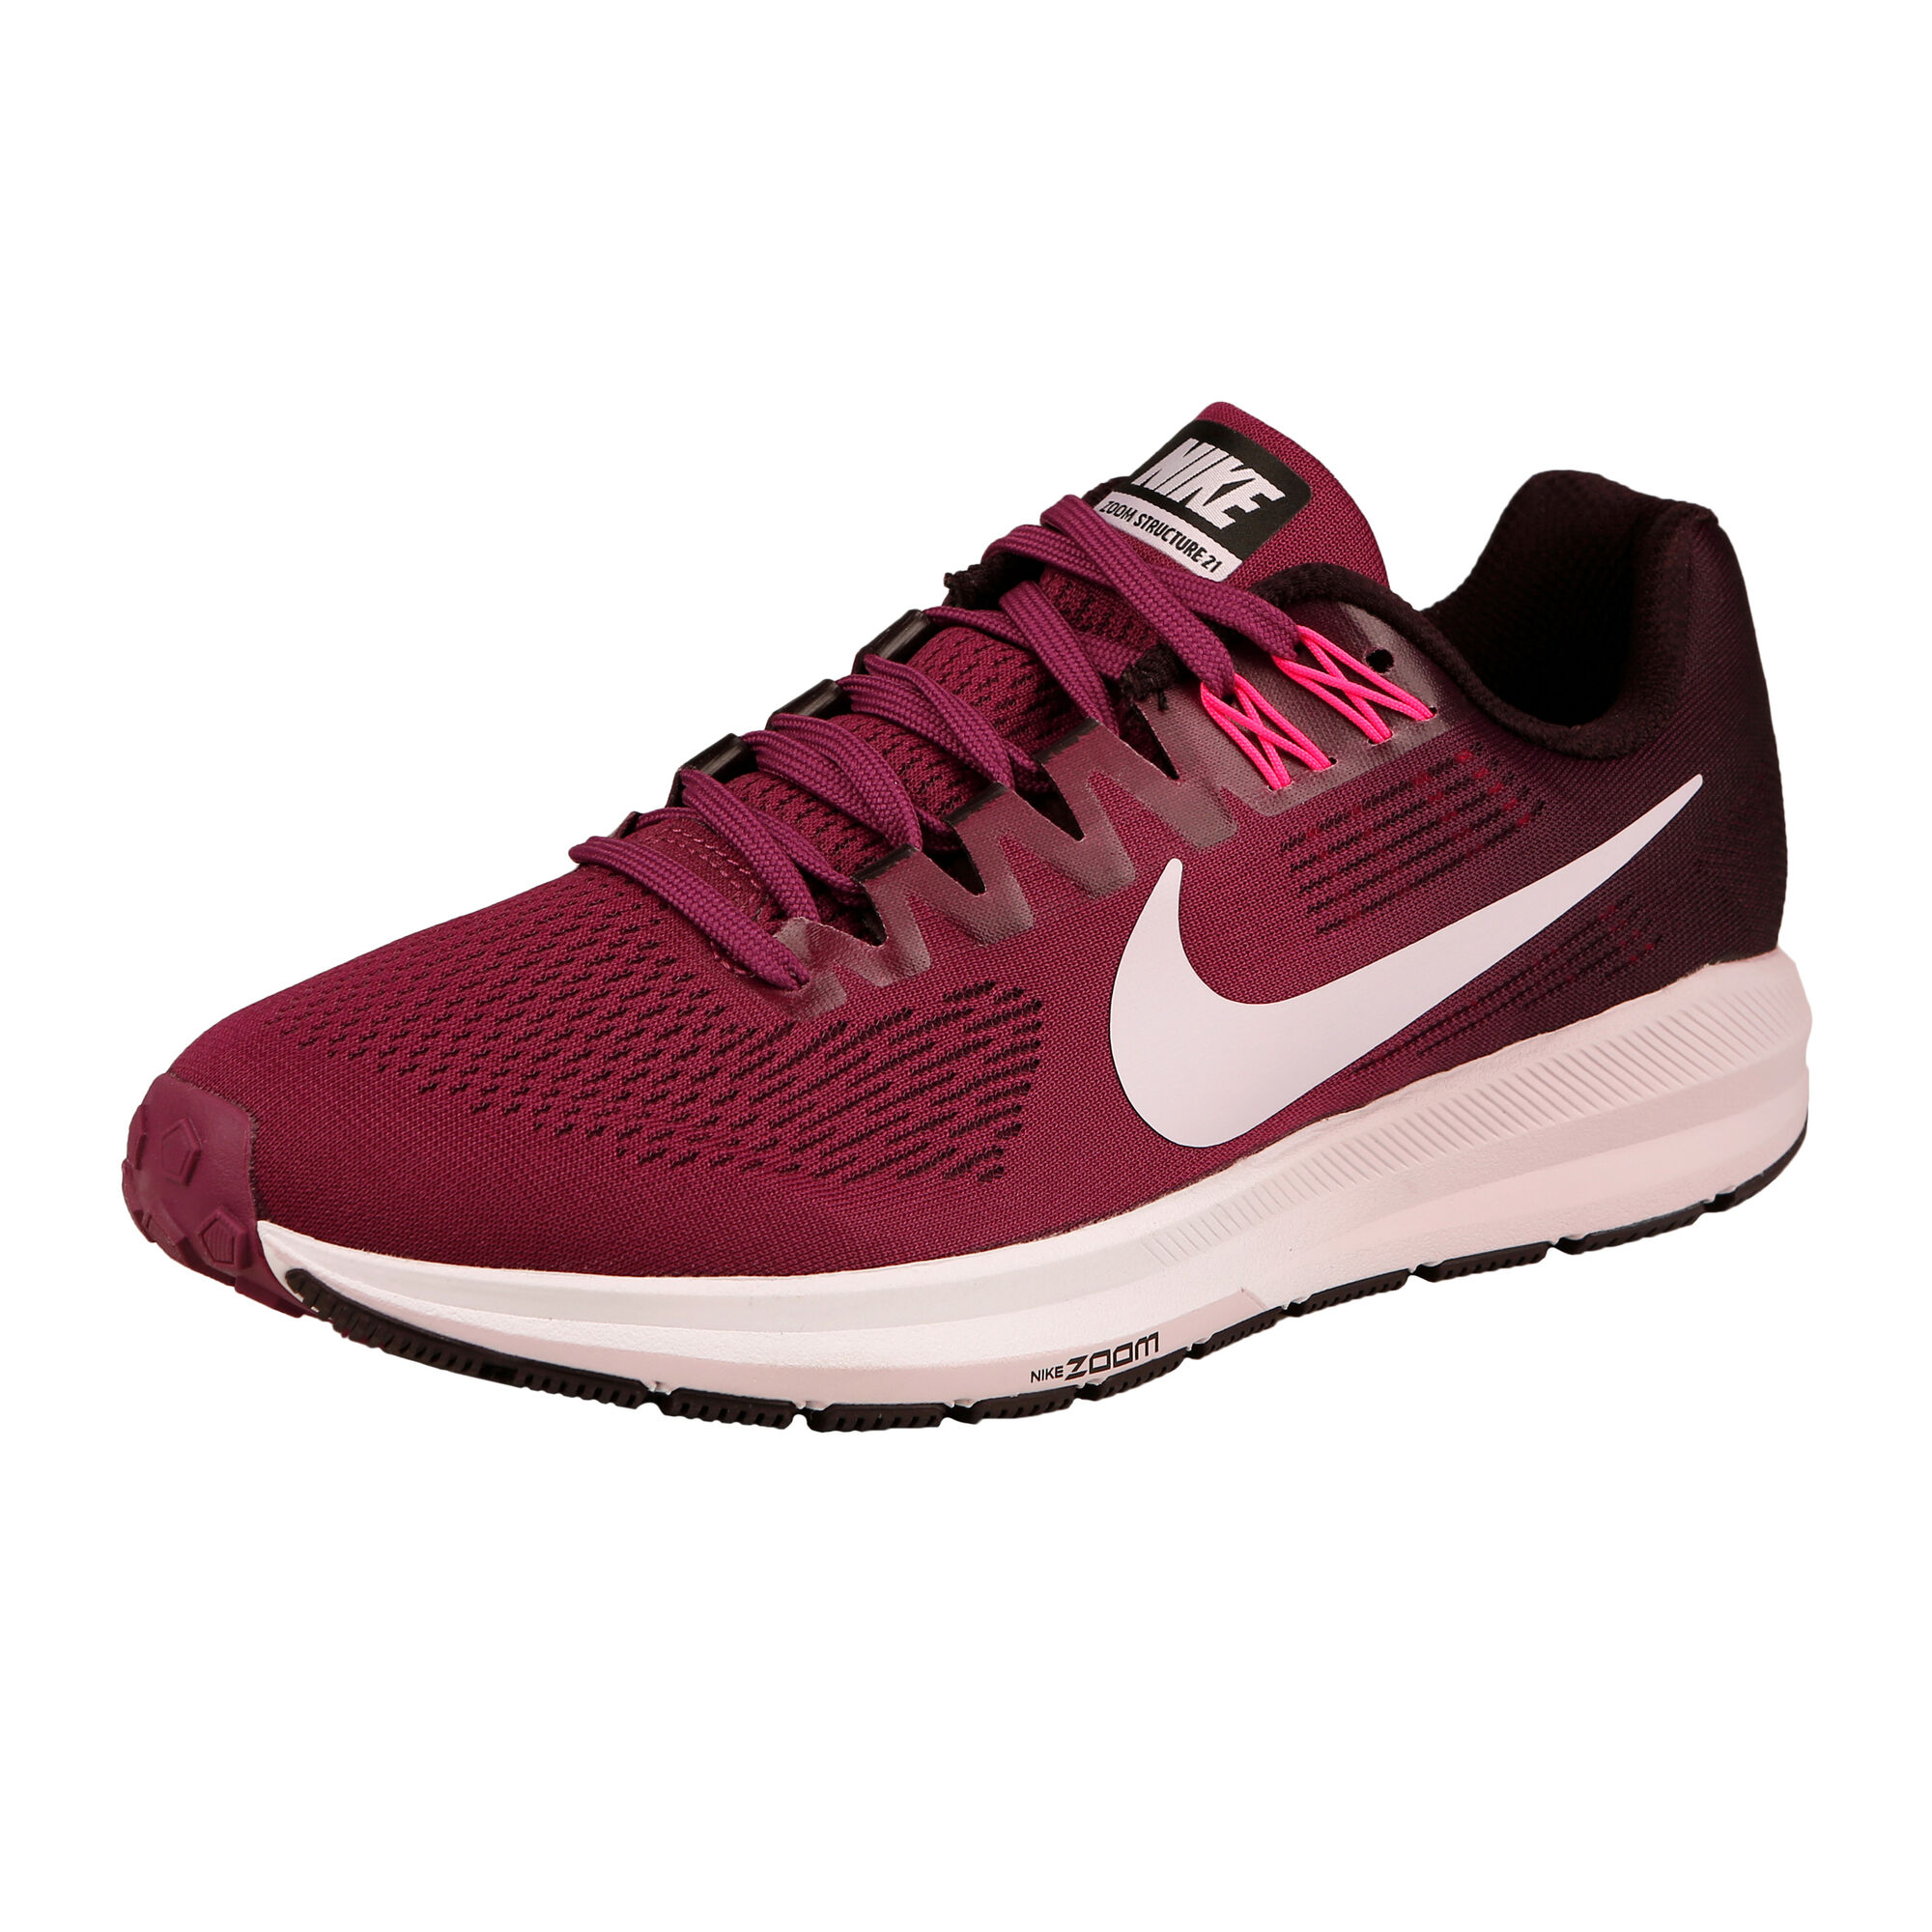 check out 963f8 2c1bb Nike Air Zoom Structure 21 Stability Running Shoe Women - Dark Red, Black